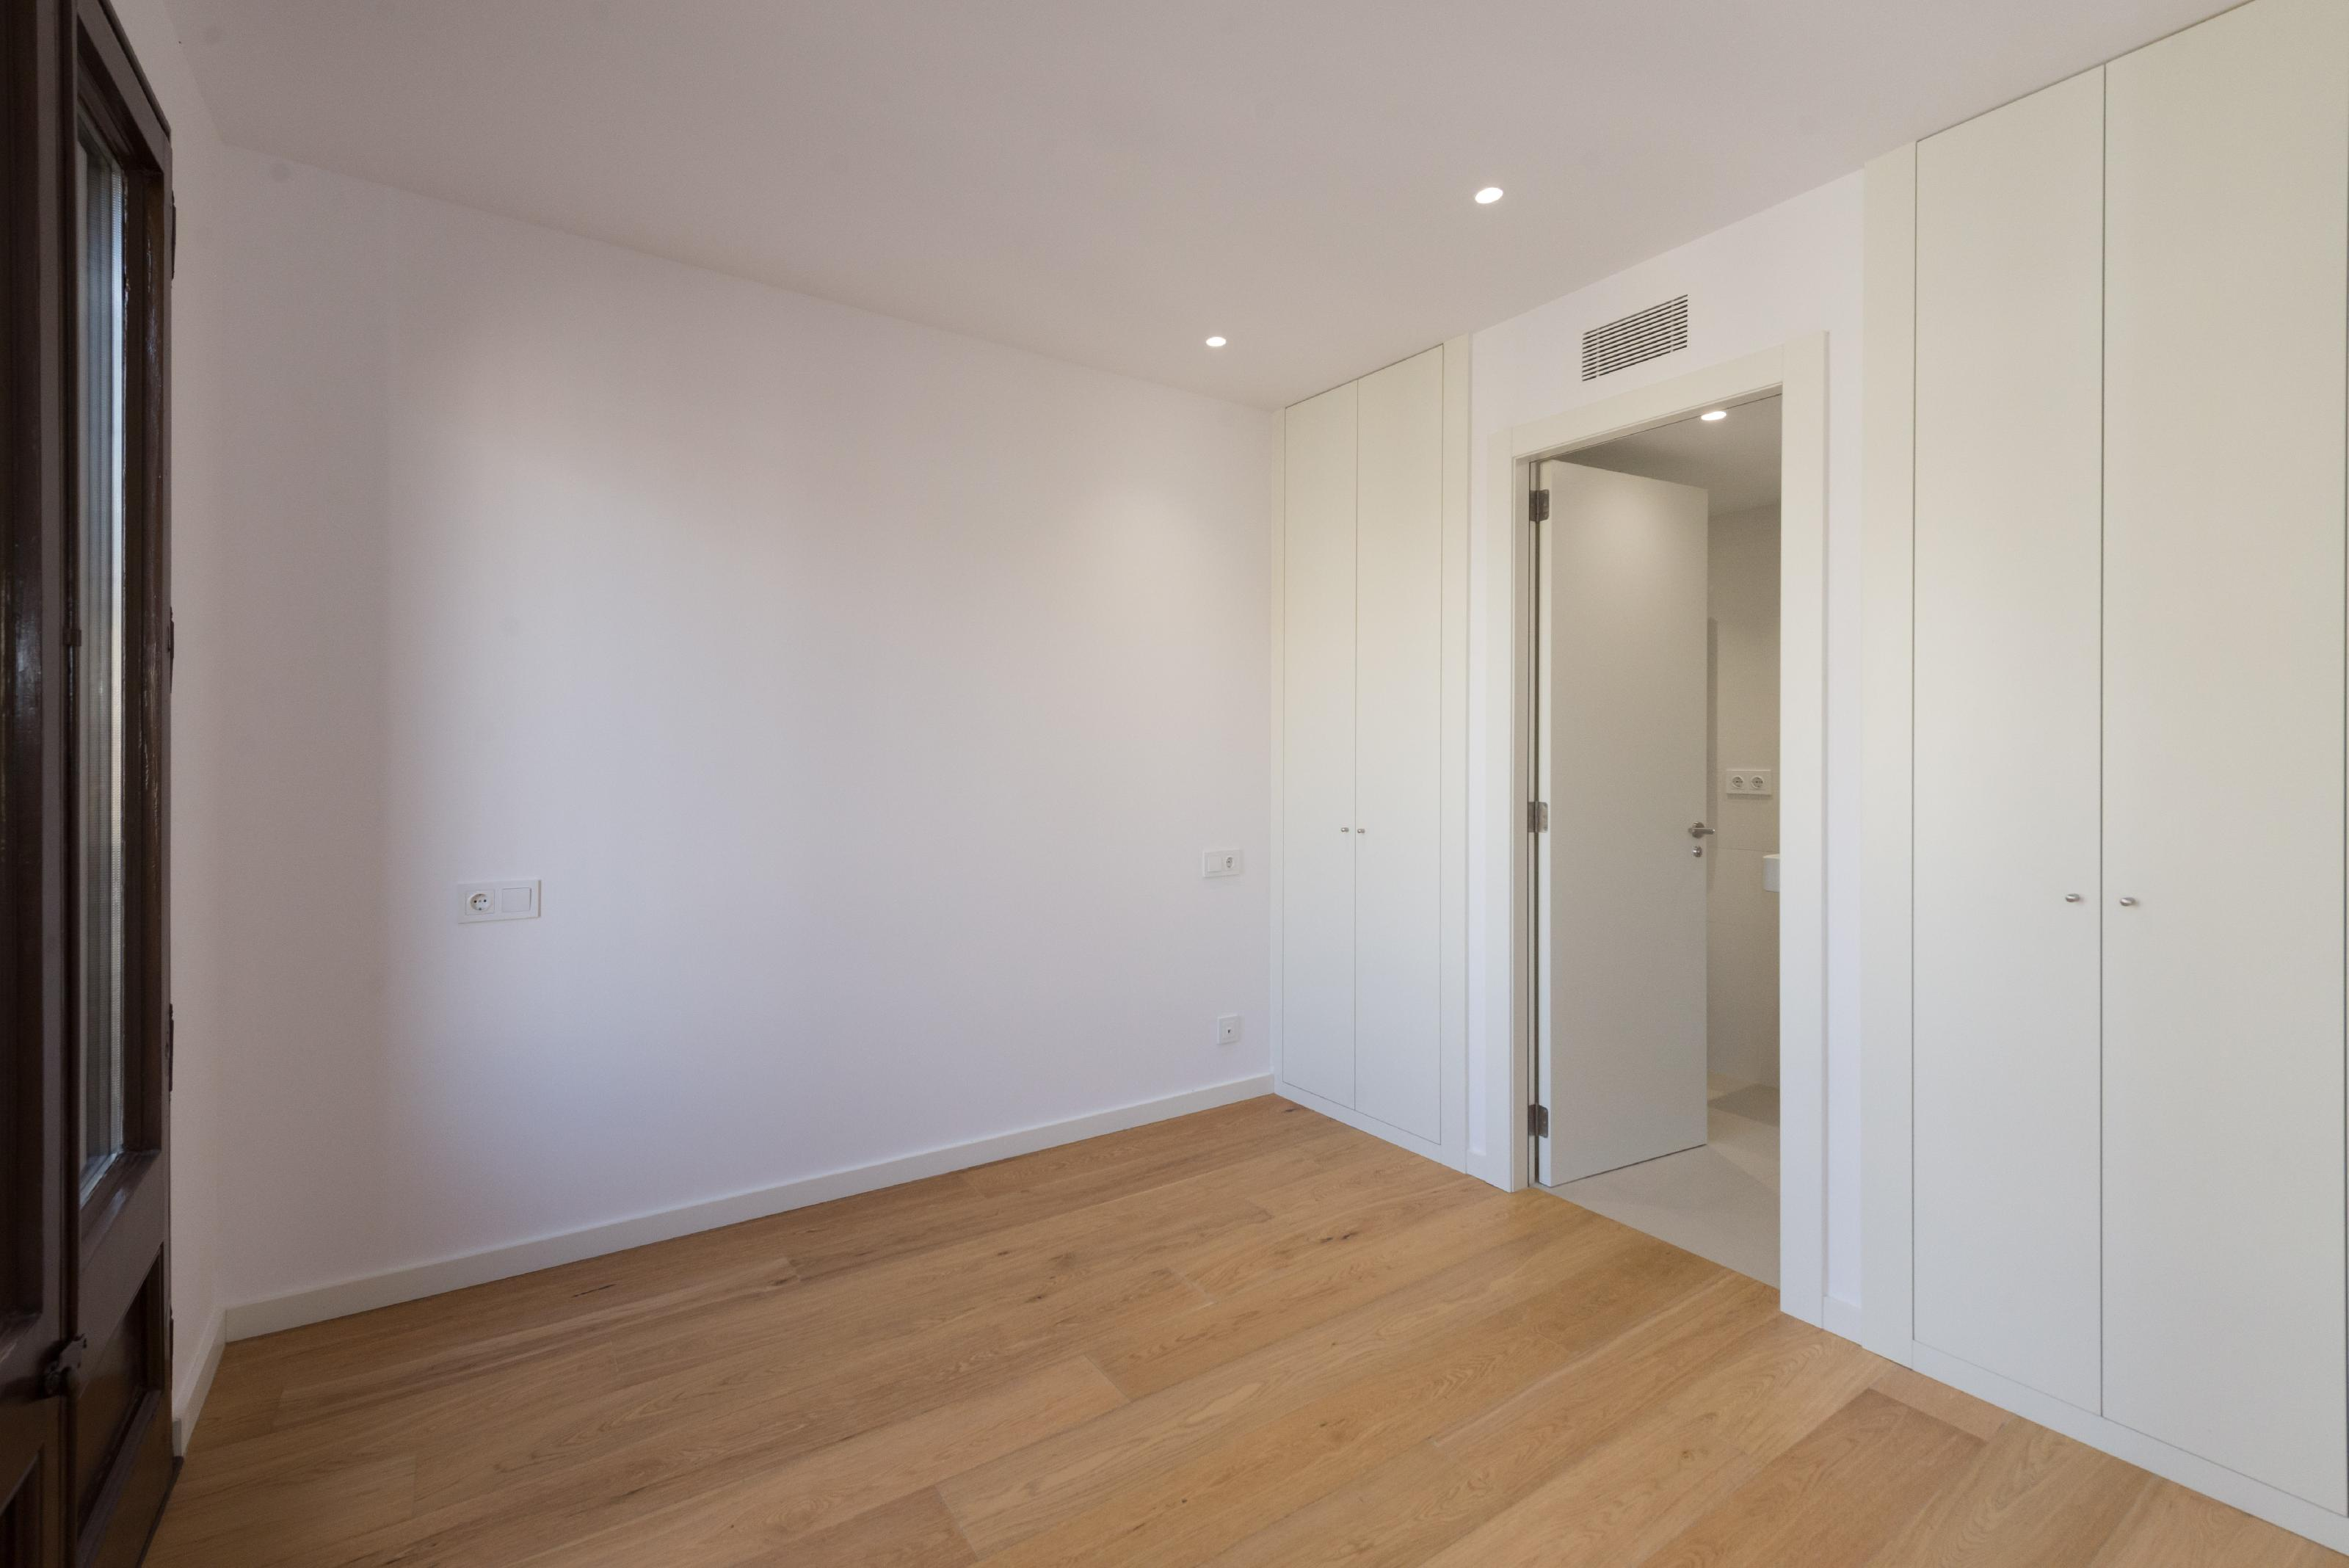 236358 Flat for sale in Eixample, Old Left Eixample 23